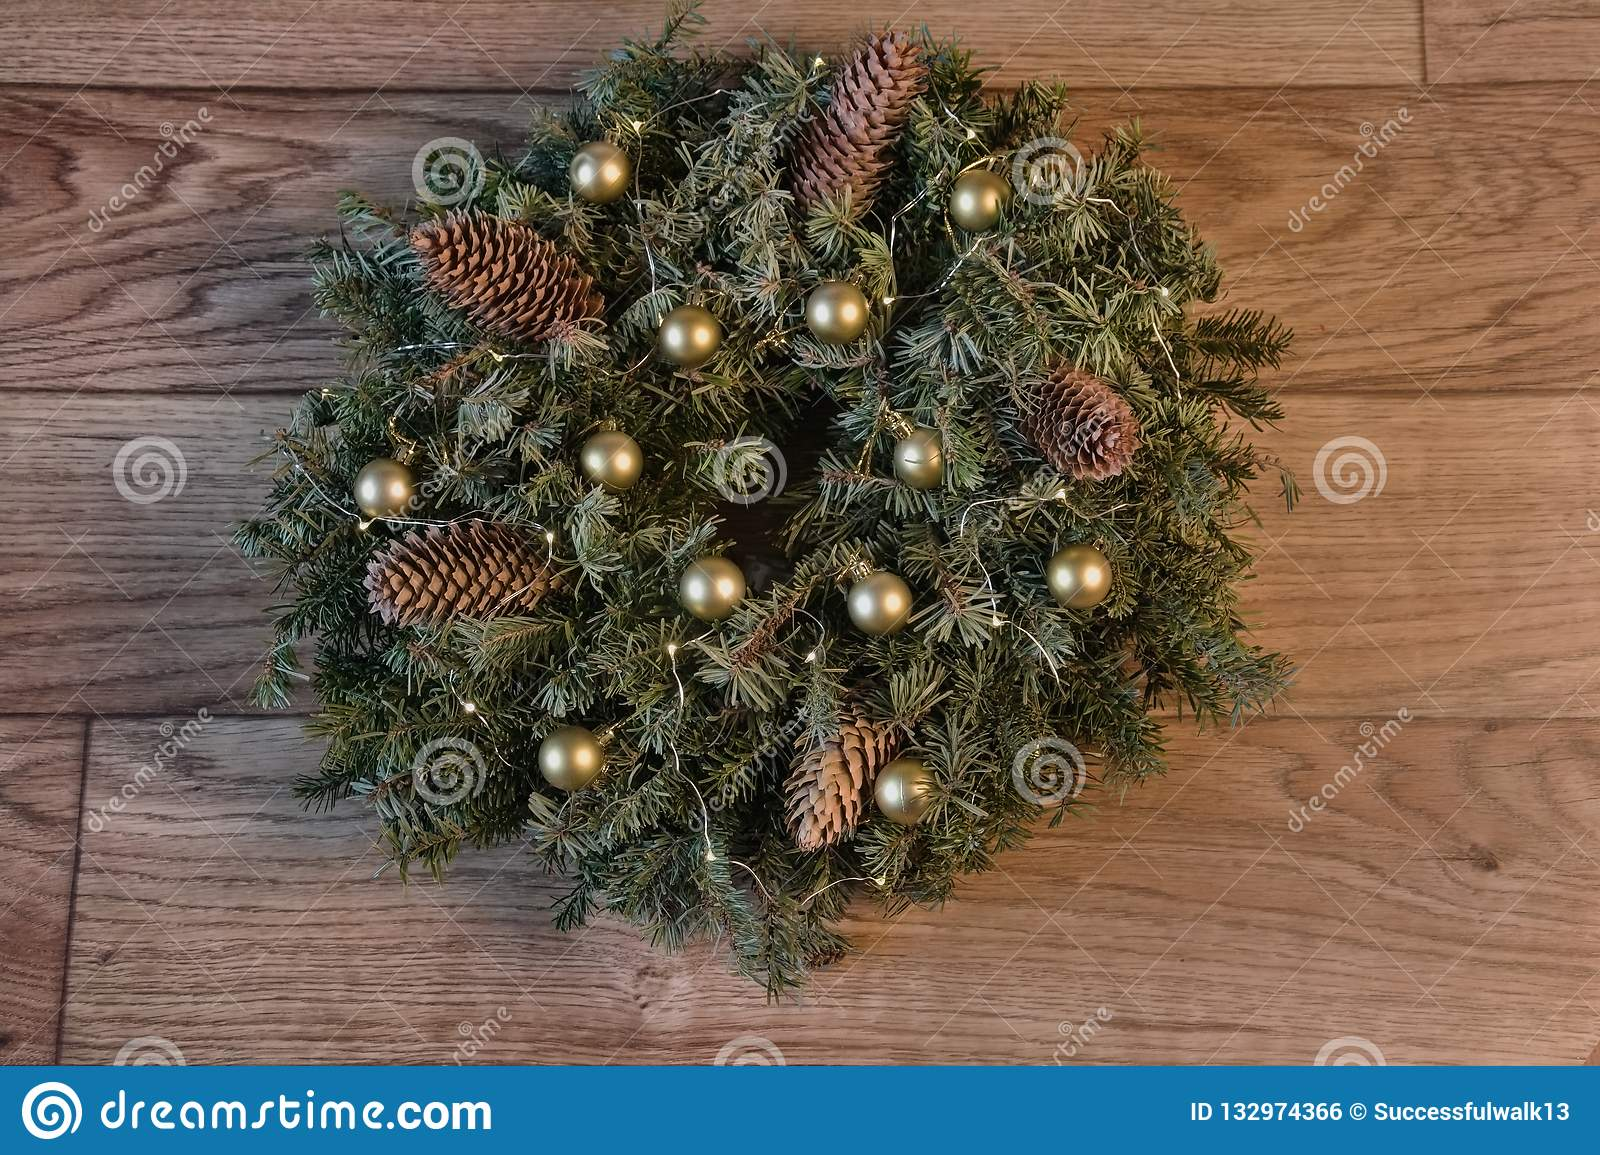 A Wreath Of Fir Branches With Cones Lights Garlands And